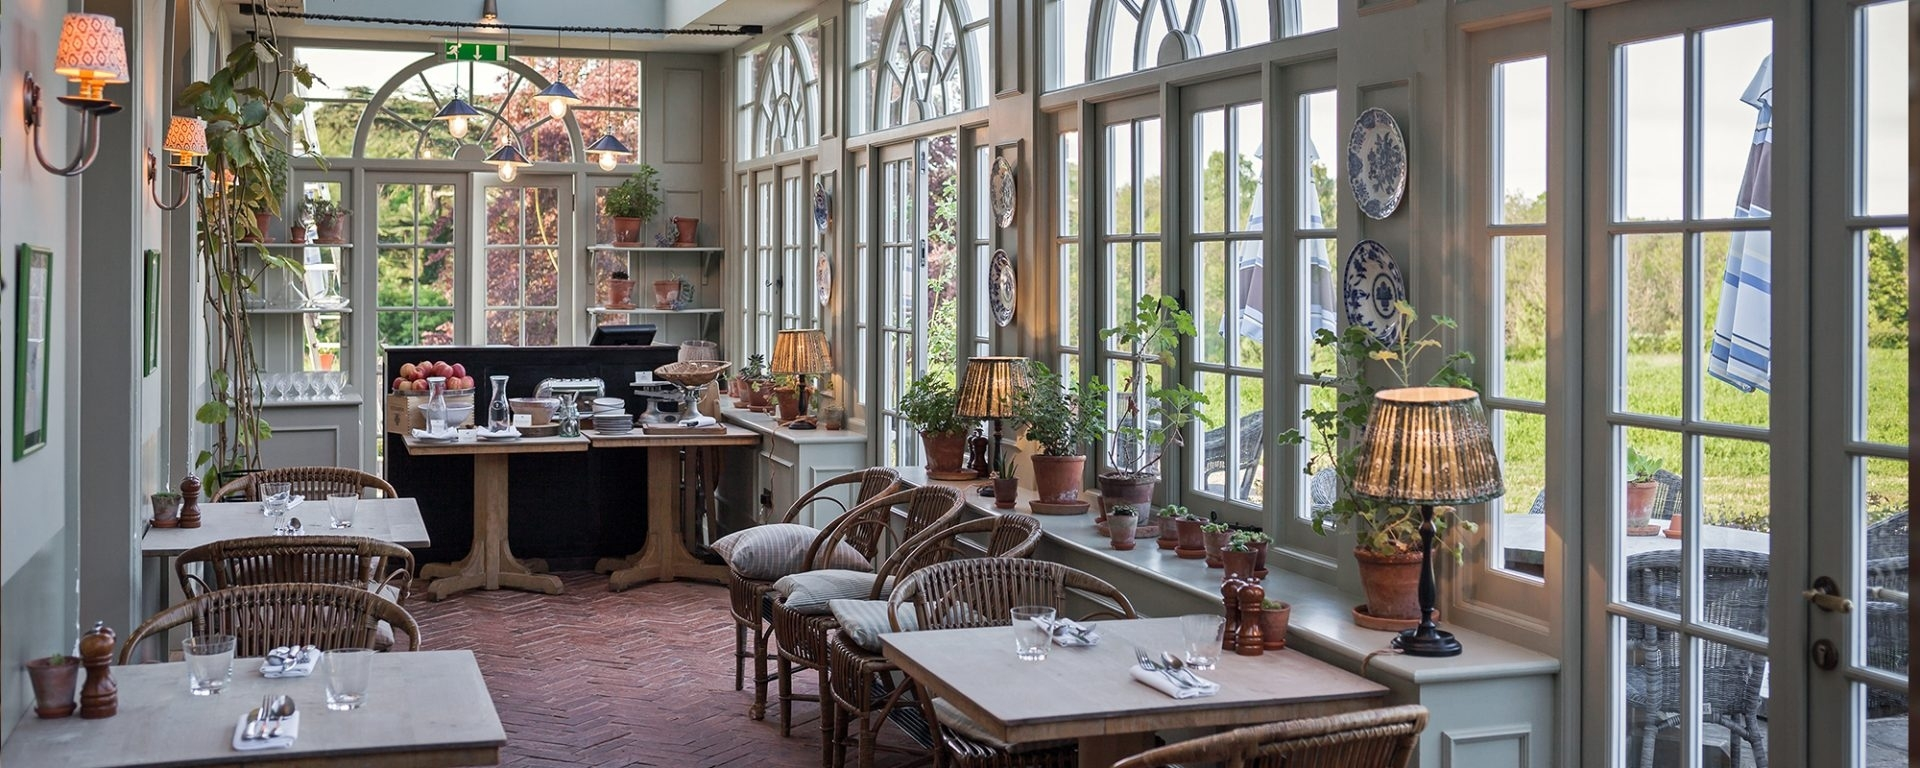 Luxury Fine Dining Restaurants In Surrey | Beaverbrook intended for Garden House Hotel And Restaurant Leatherhead